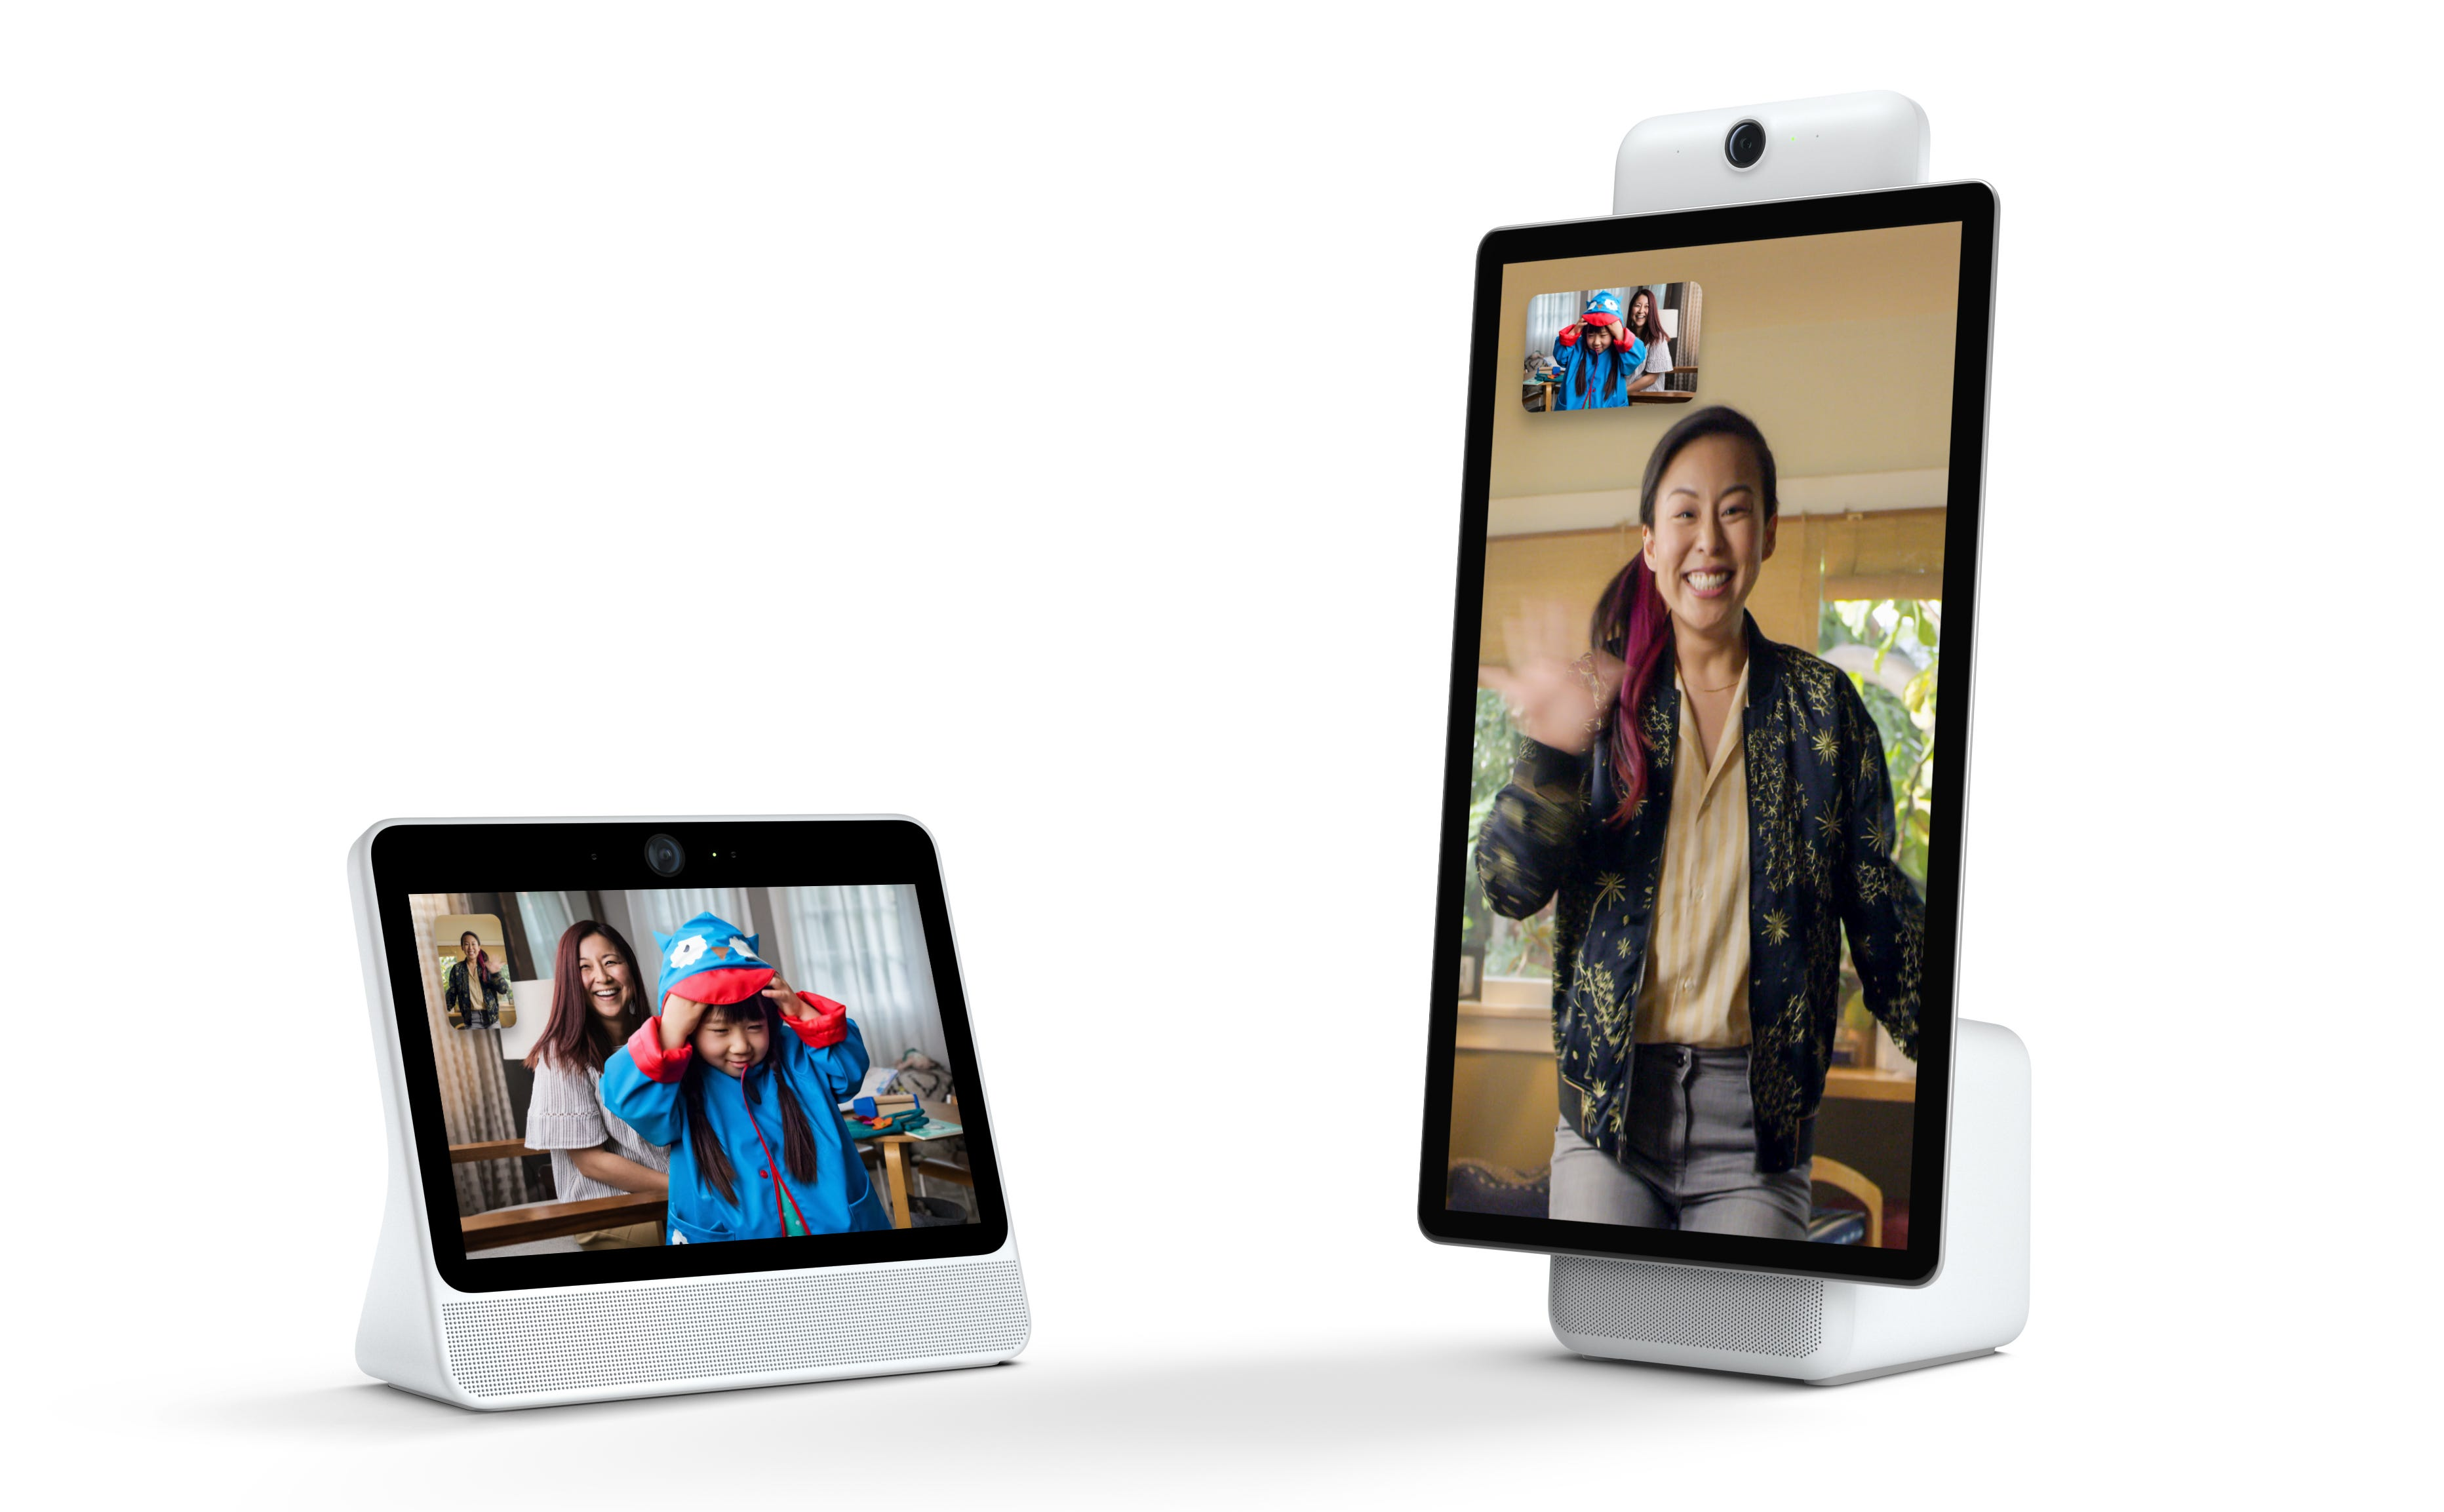 Facebook will offer Portal in two sizes.